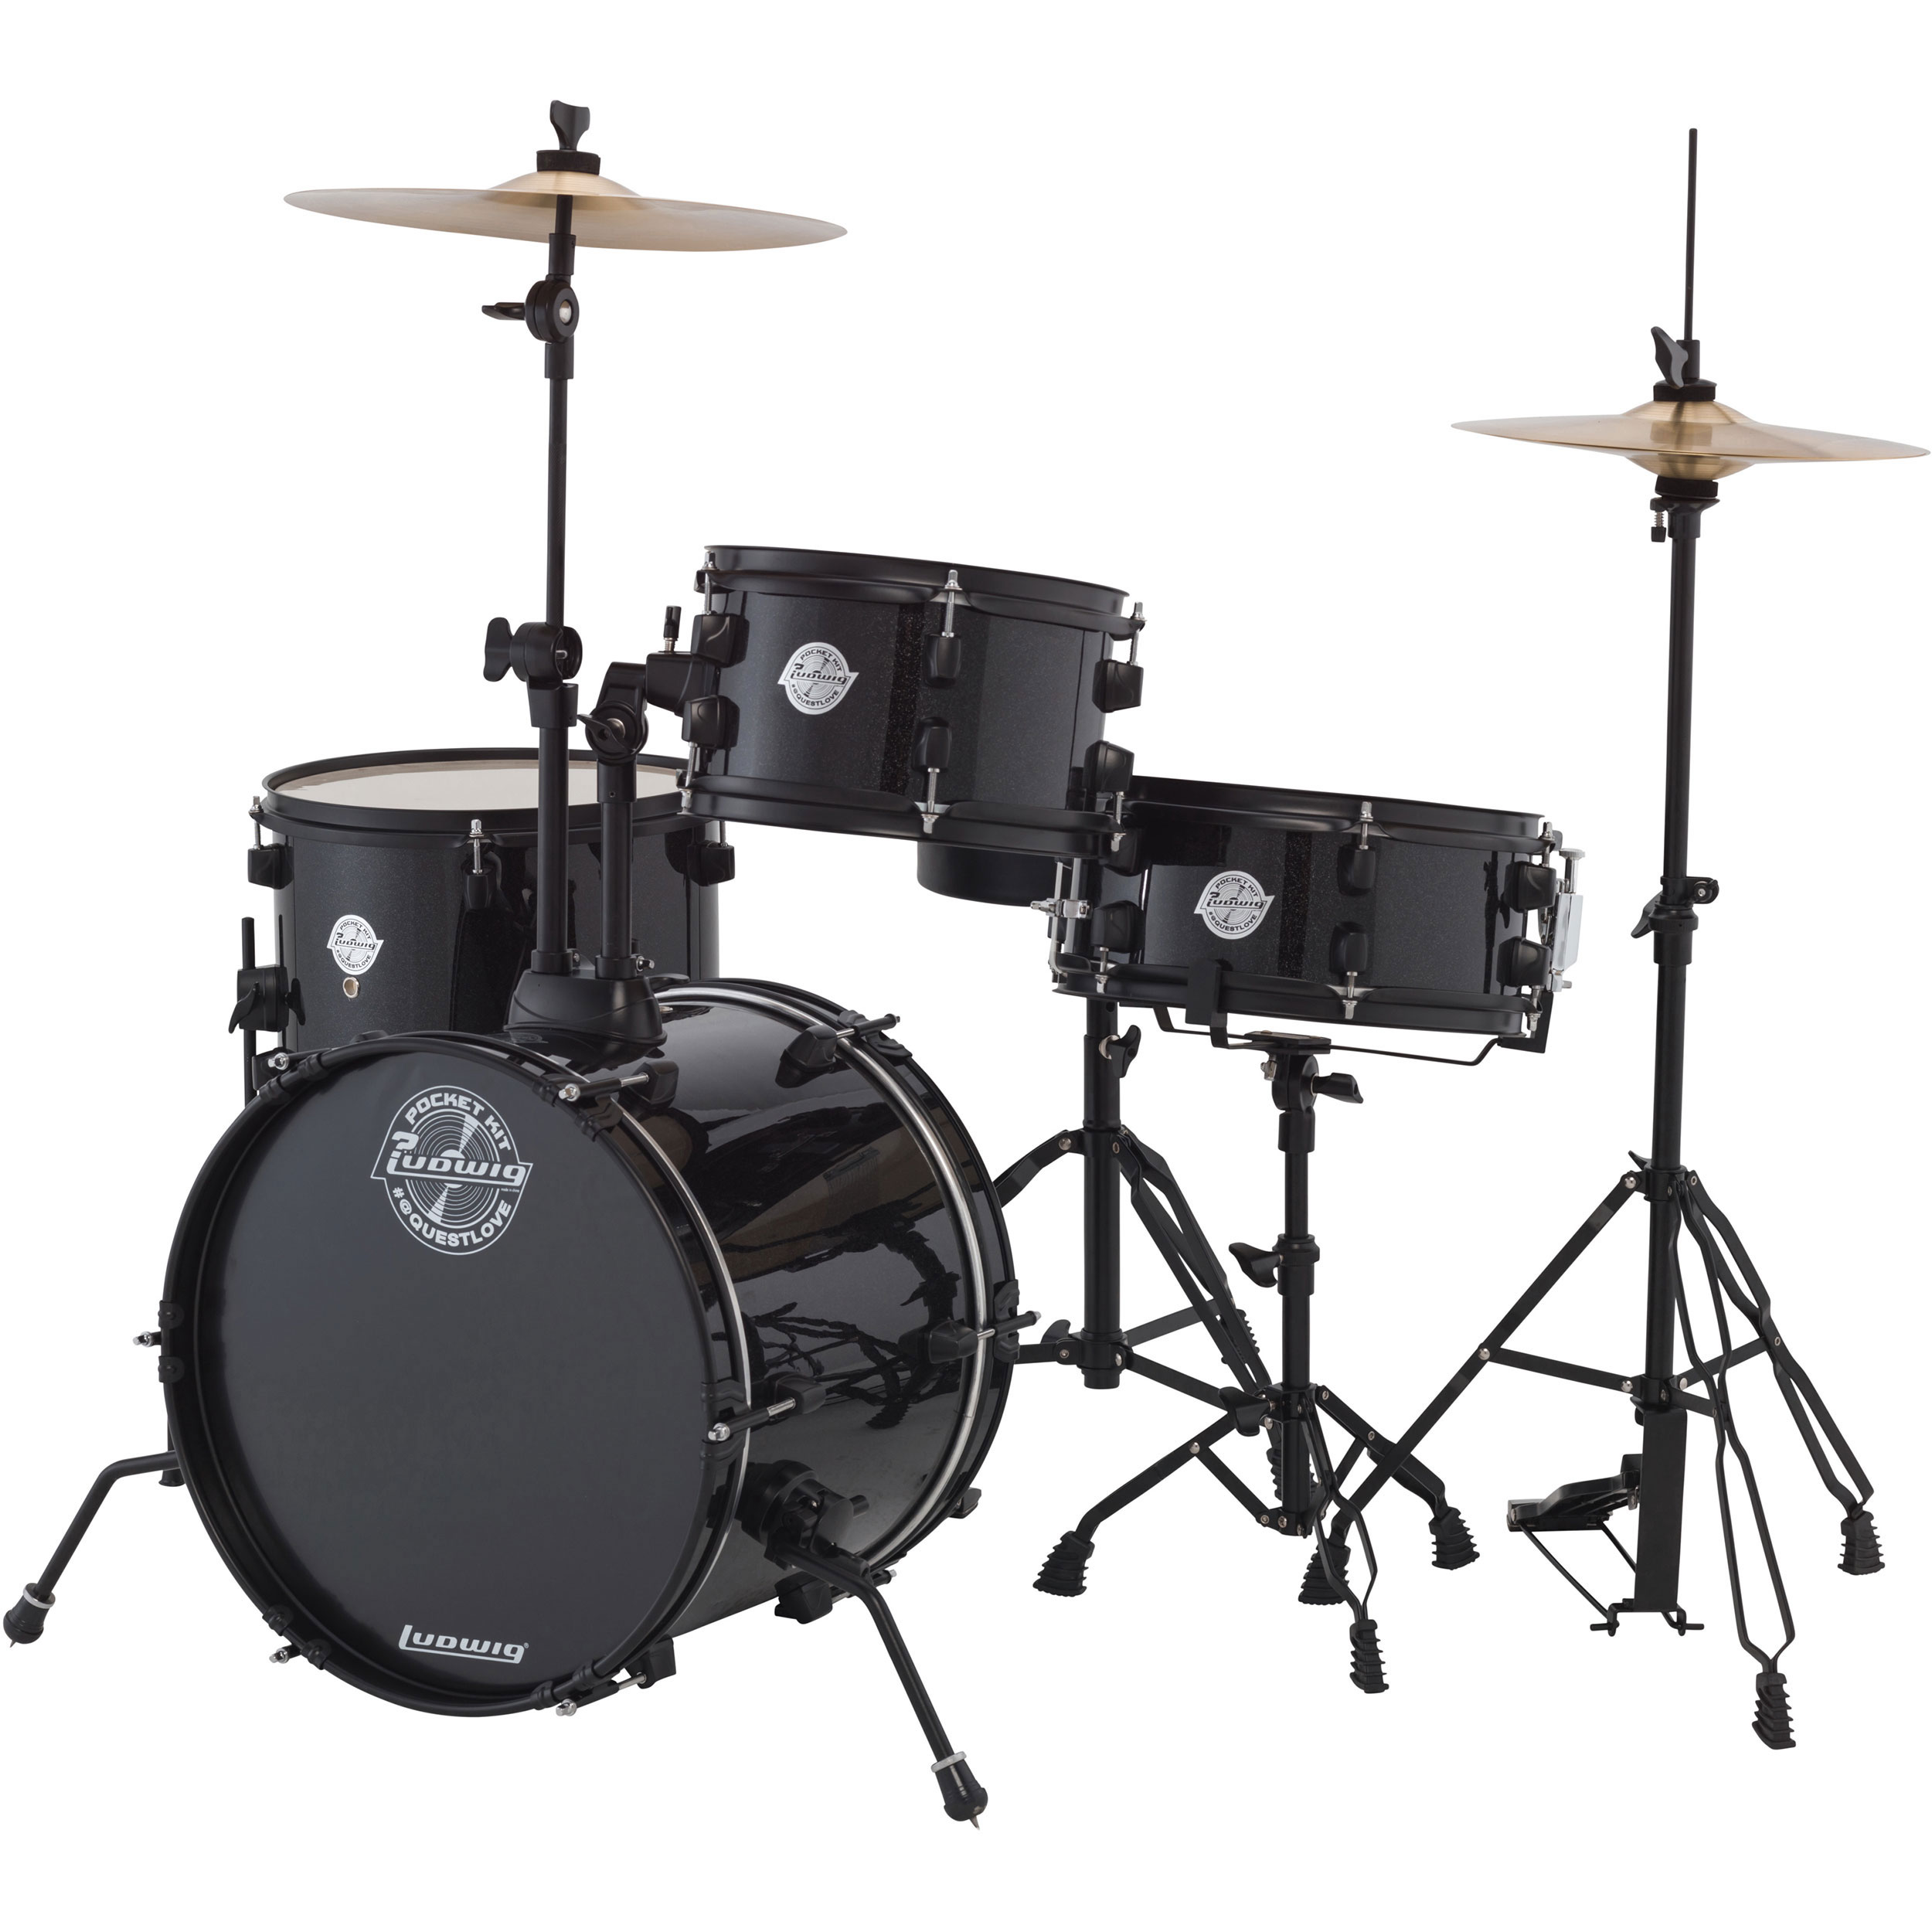 """Ludwig Pocket Kit 4-Piece Drum Set with Hardware & Cymbals (16"""" Bass, 10/13"""" Toms, 12"""" Snare)"""